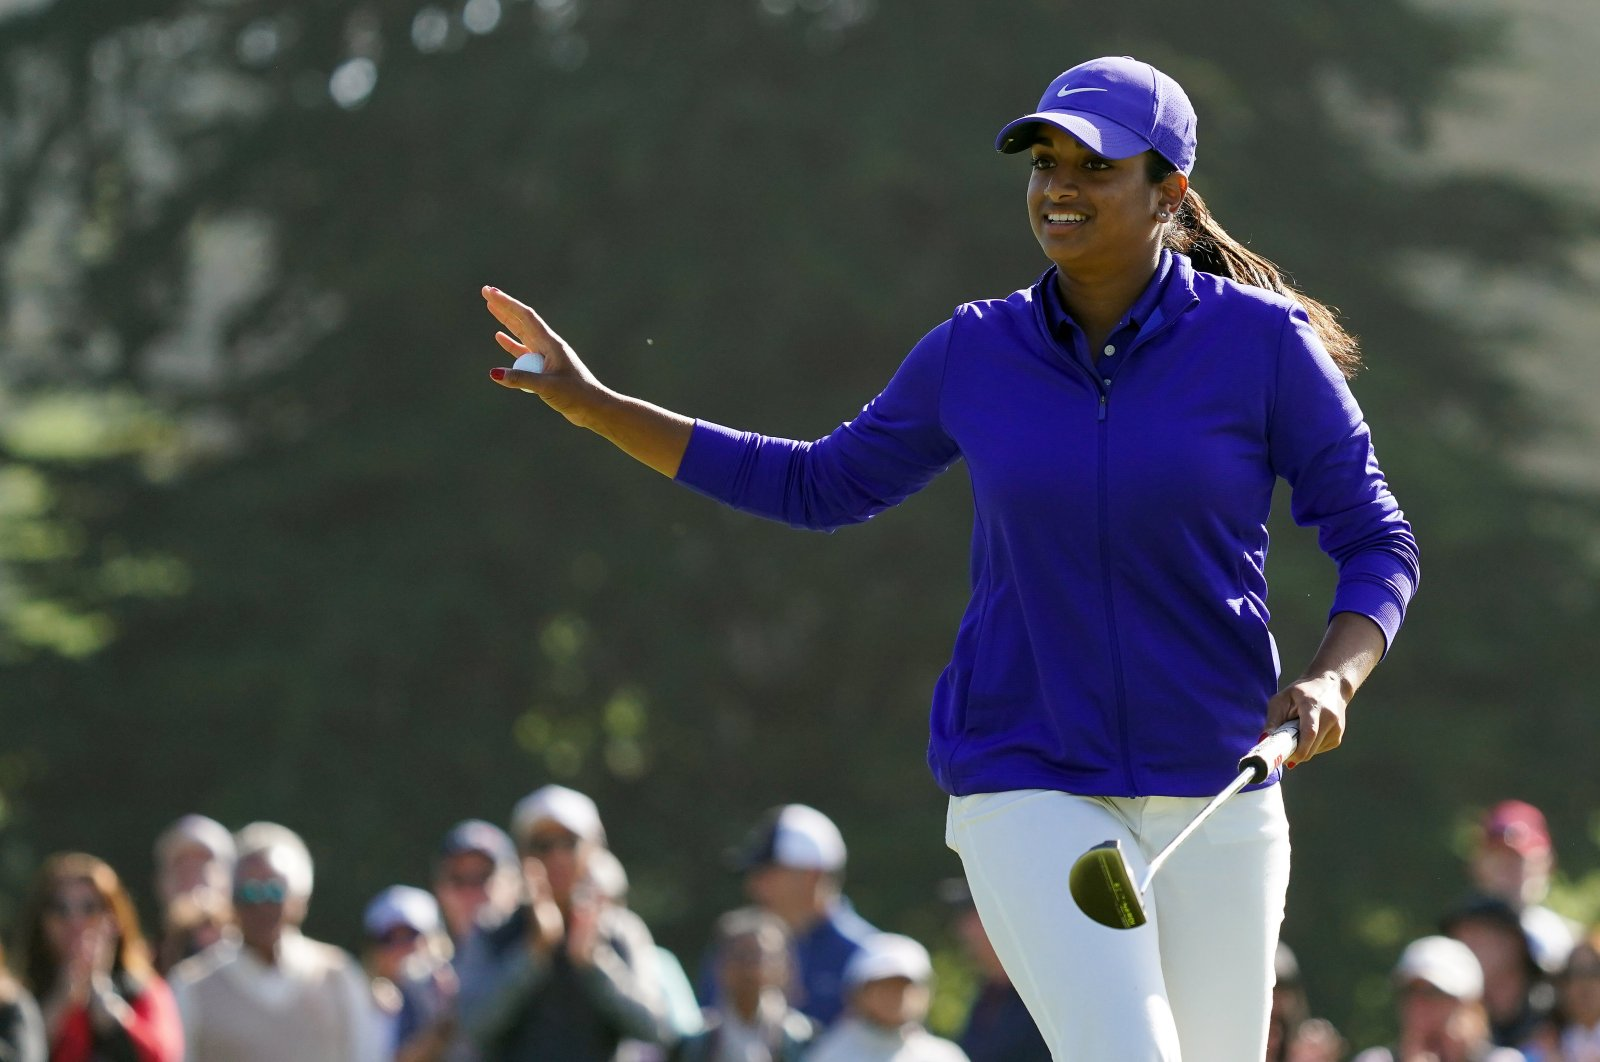 Megha Ganne waves to the gallery after putting out on the 14th green during the third round of the U.S. Women's Open golf tournament at The Olympic Club, San Francisco, California, U.S., Jun 5, 2021. (Reuters Photo)